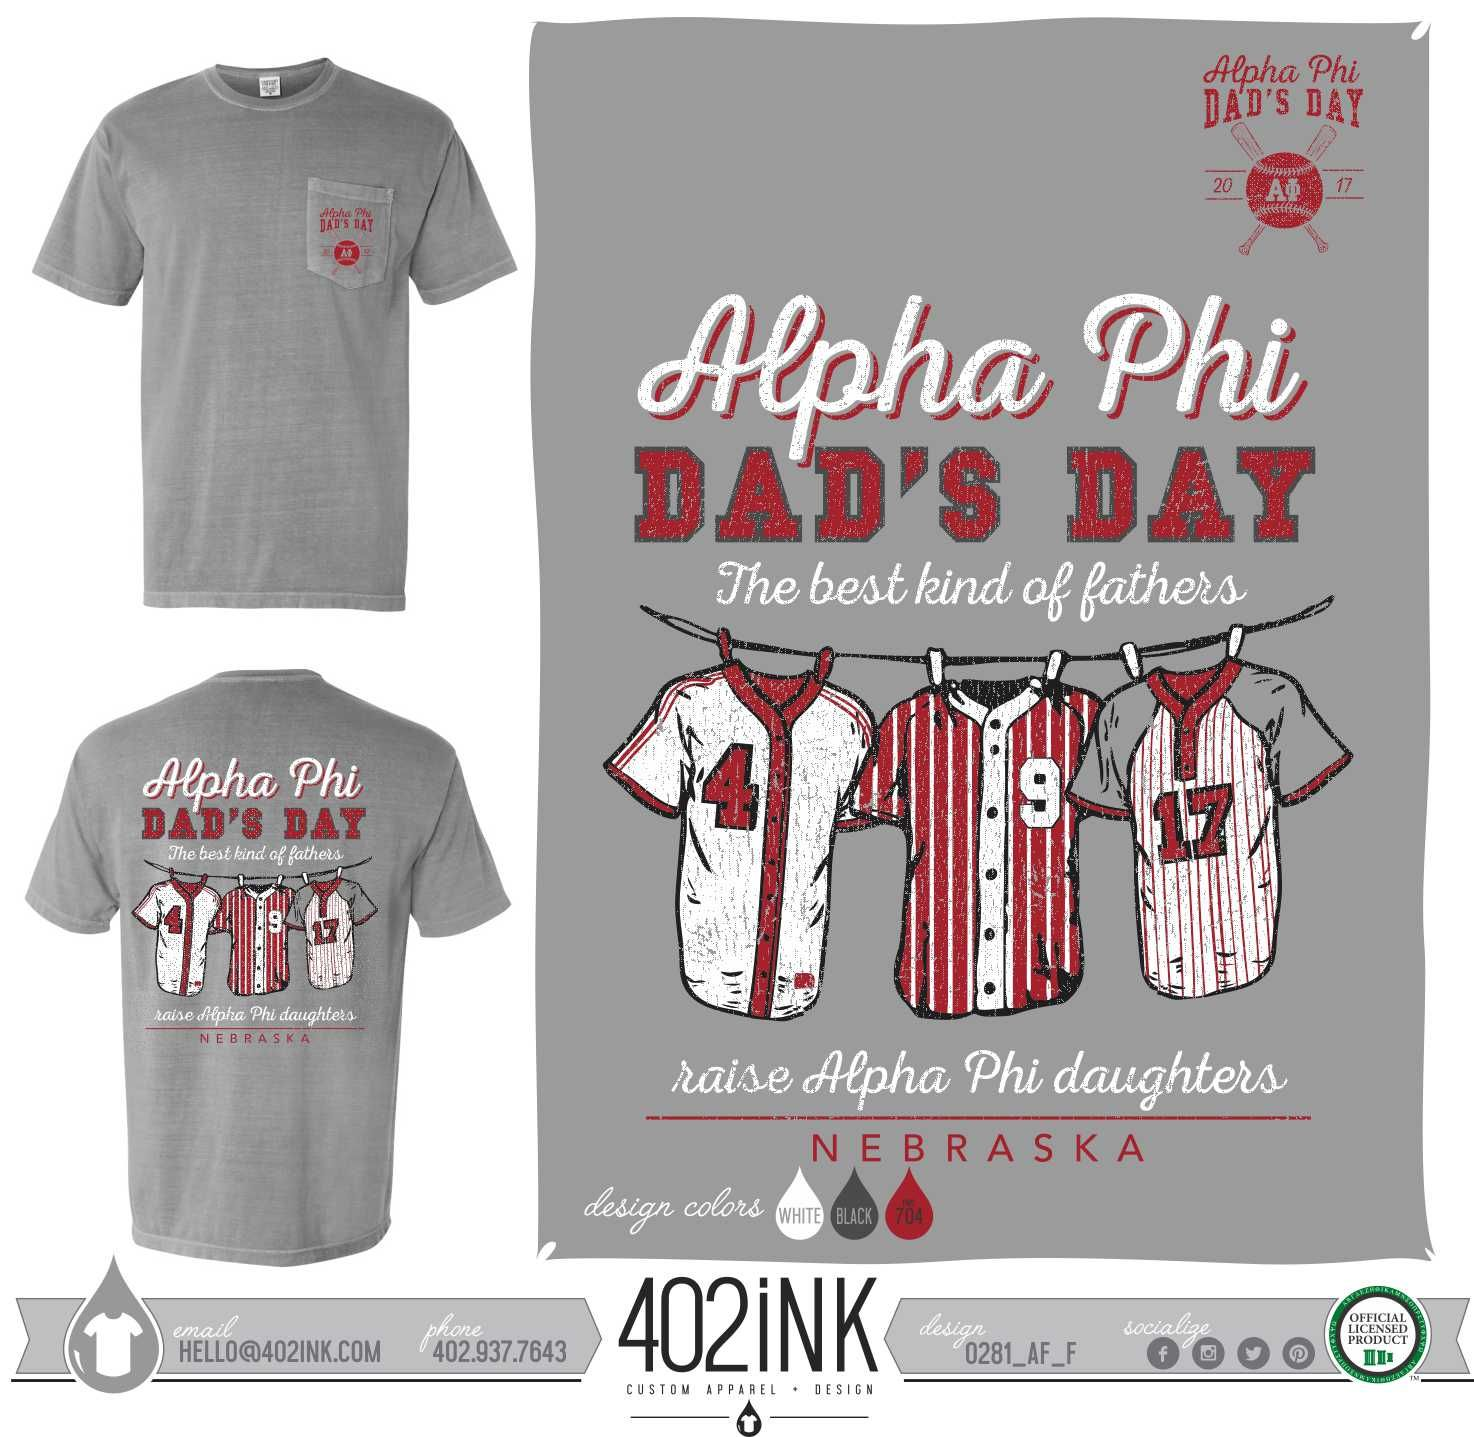 72d246db ... Custom Greek Apparel, Screen printed apparel, embroidered apparel,  Sorority, APHI, Alpha Phi, Dad's Day, Dad's Weekend, Game Day, Baseball  Theme